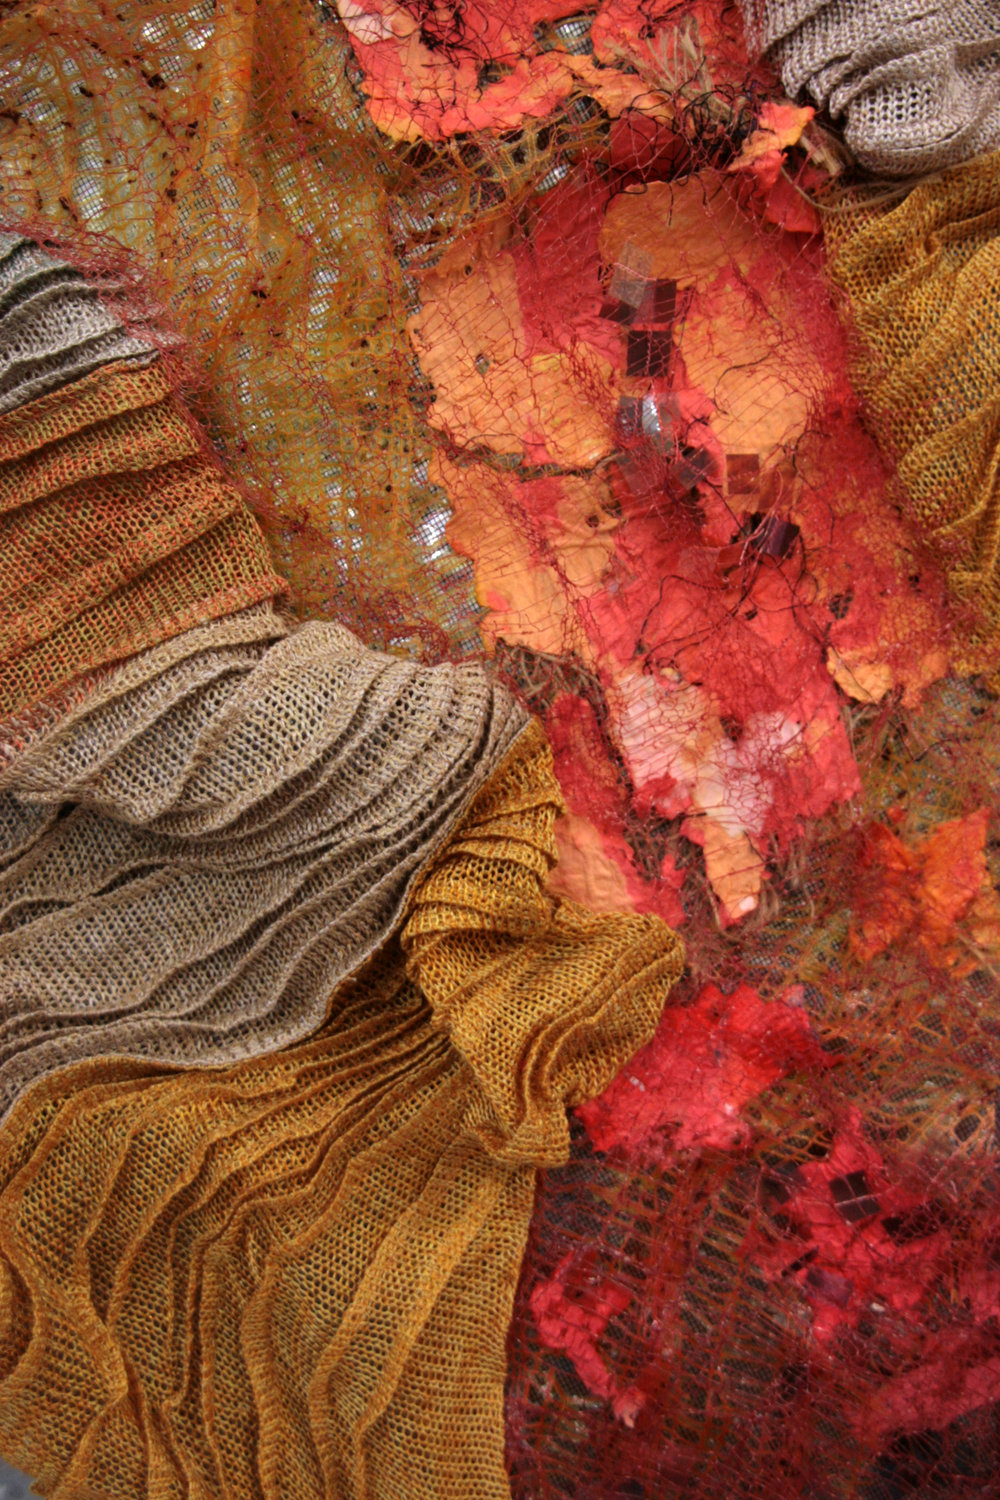 Patricia Rose,  Journey of Connection , 2015, mixed media: scientific wire, silk, wool, threads, paper, transparencies, 151 x 92 x 10cm. Photograph courtesy the artist.